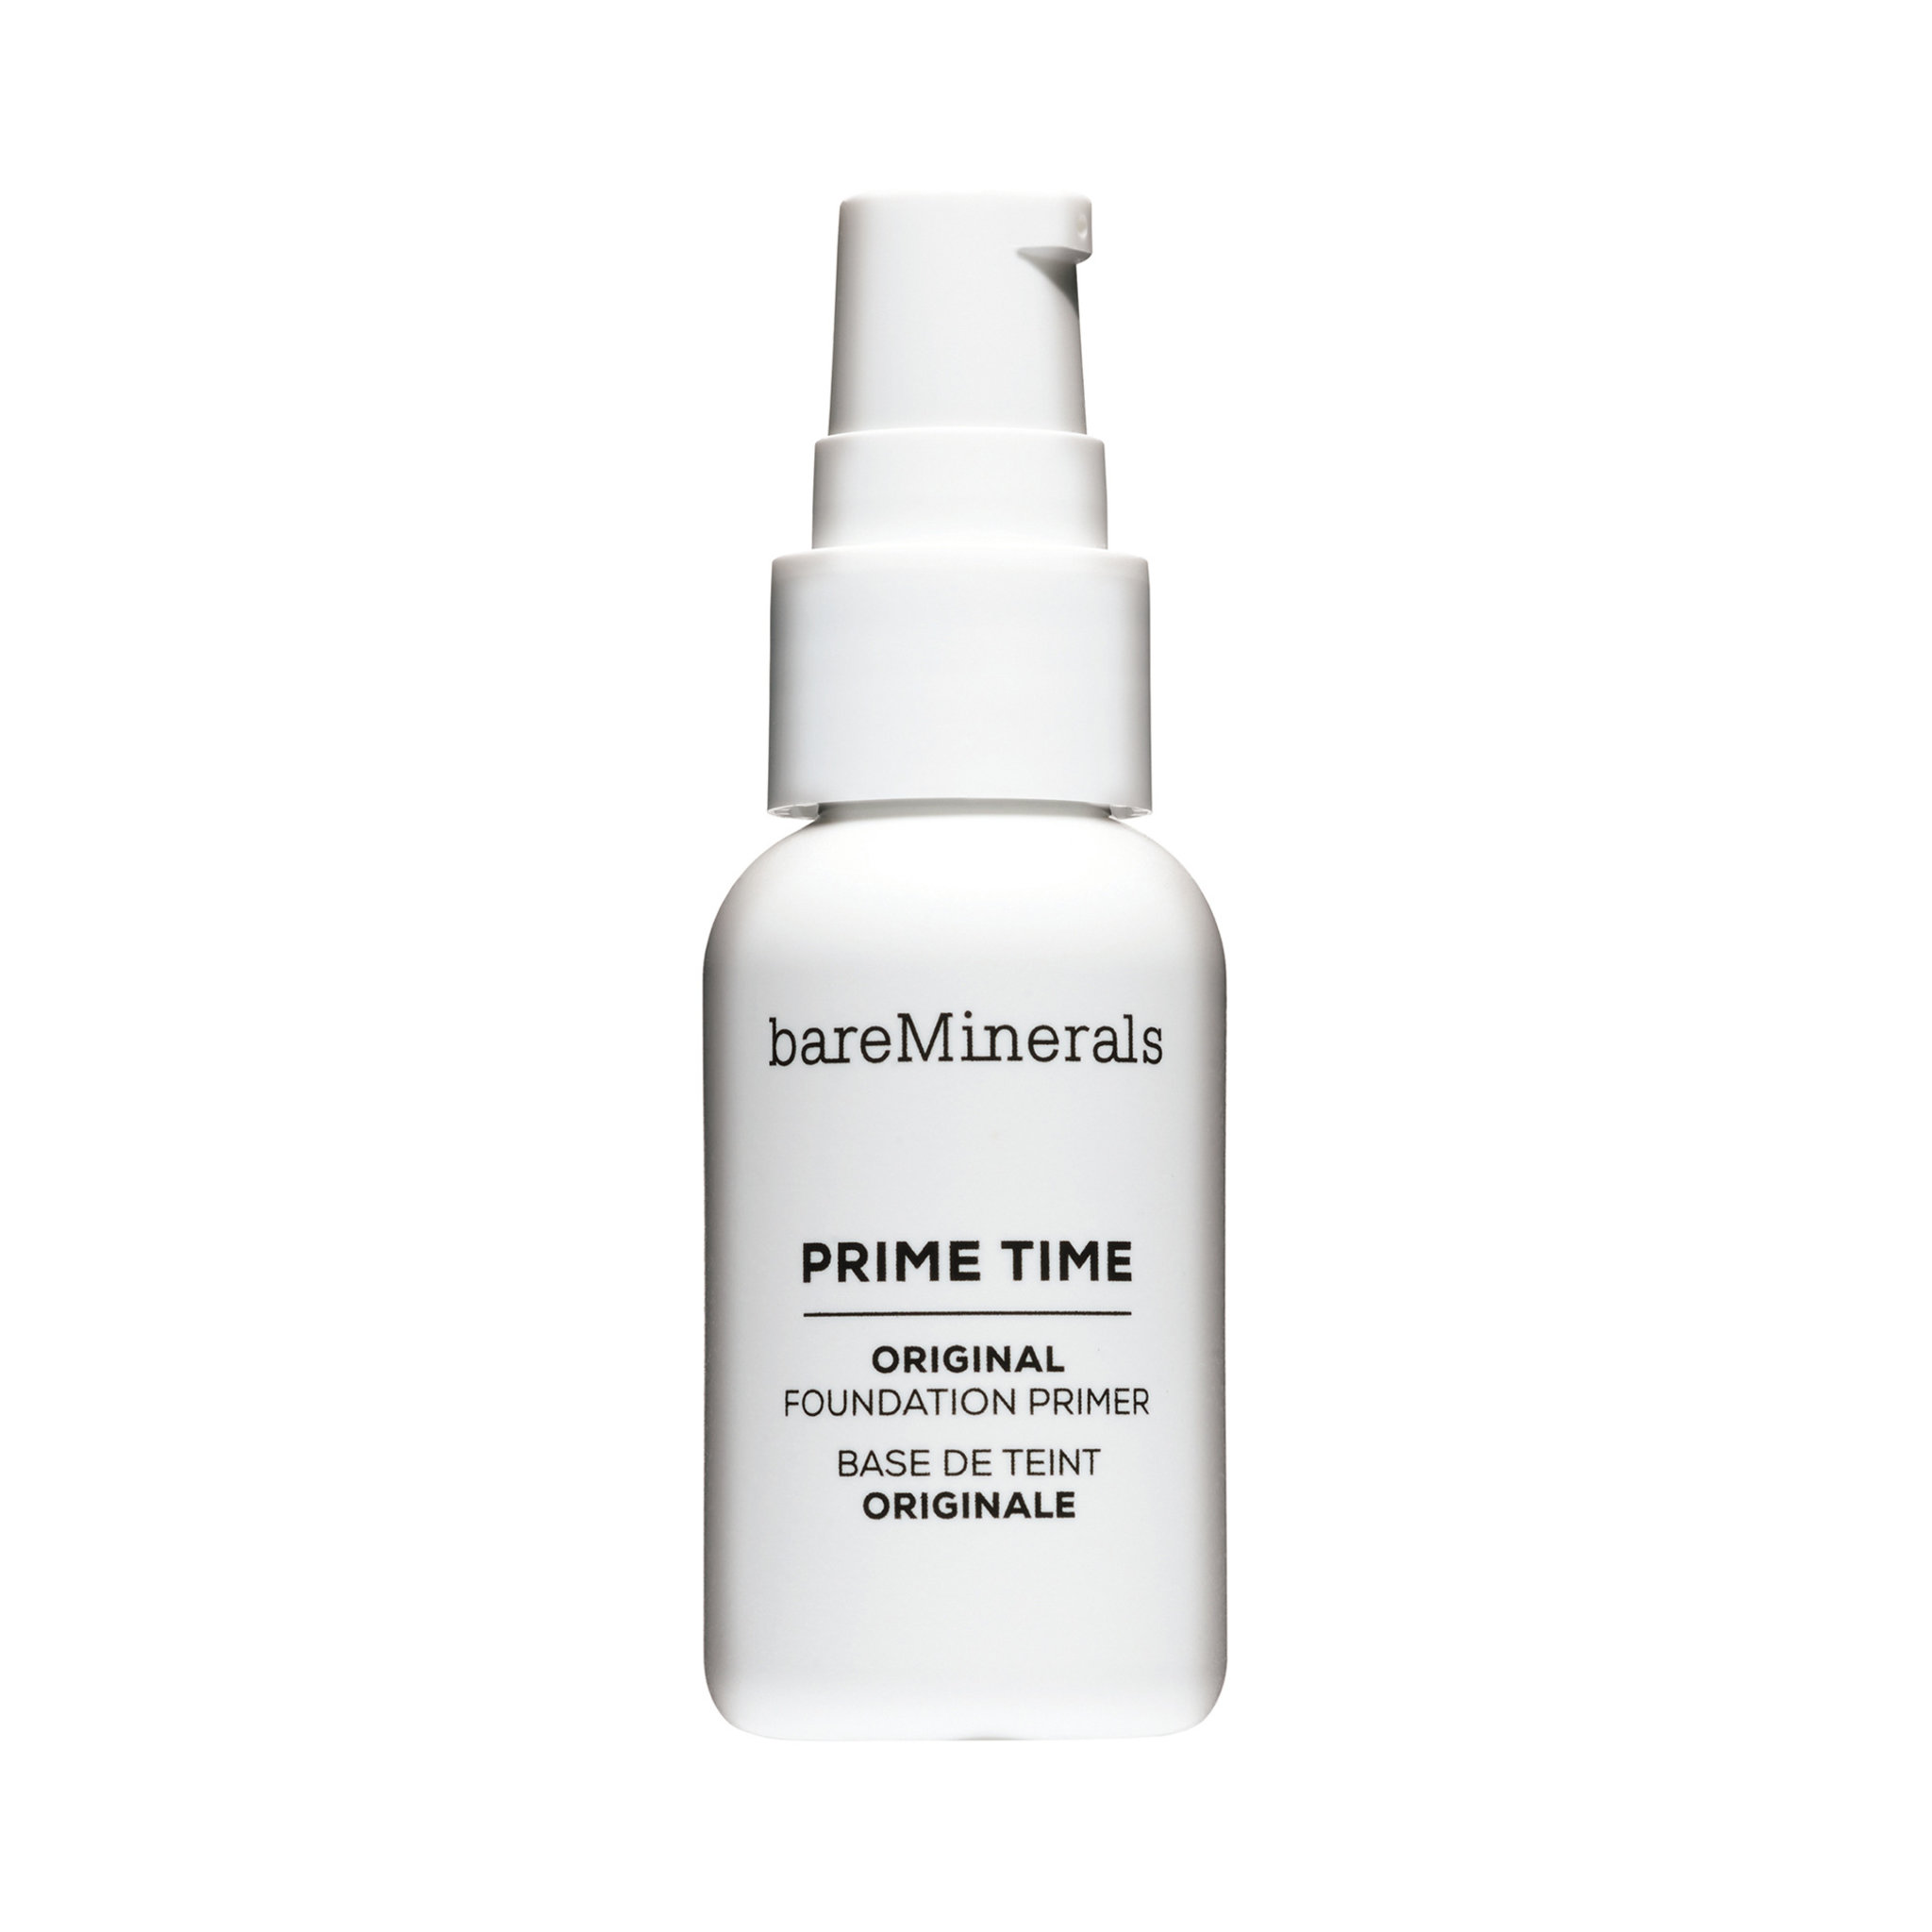 Prime Time Original Foundation Primer